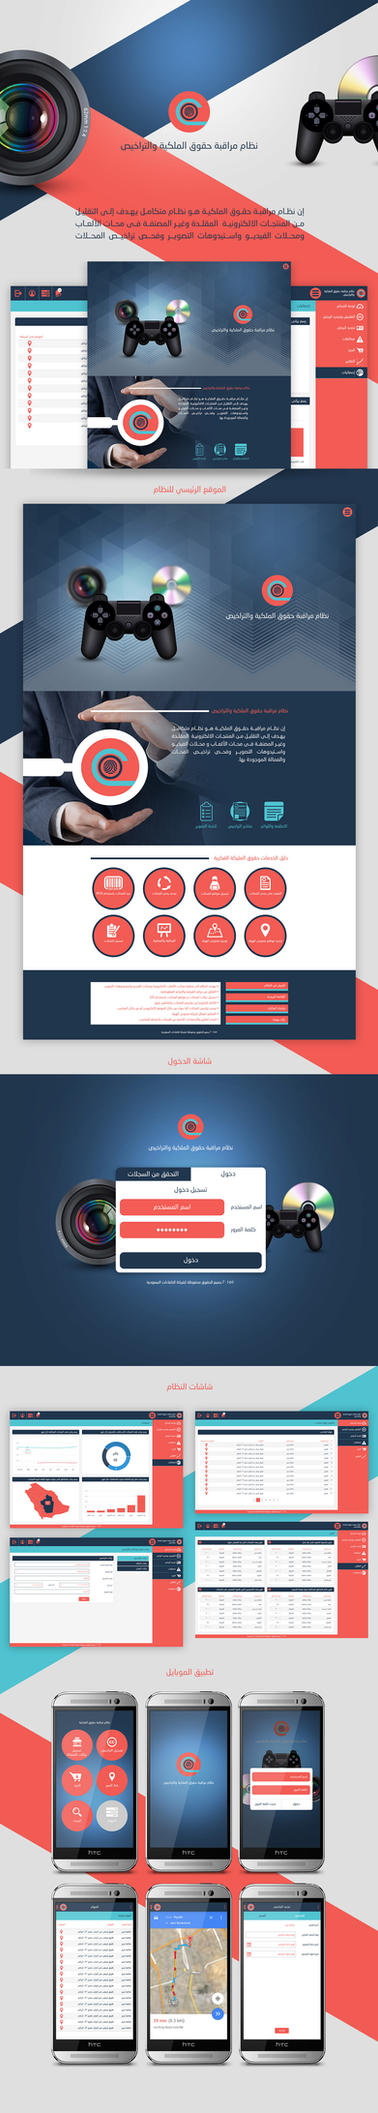 Intellectual Property System Web and Mobile app by KarimStudio